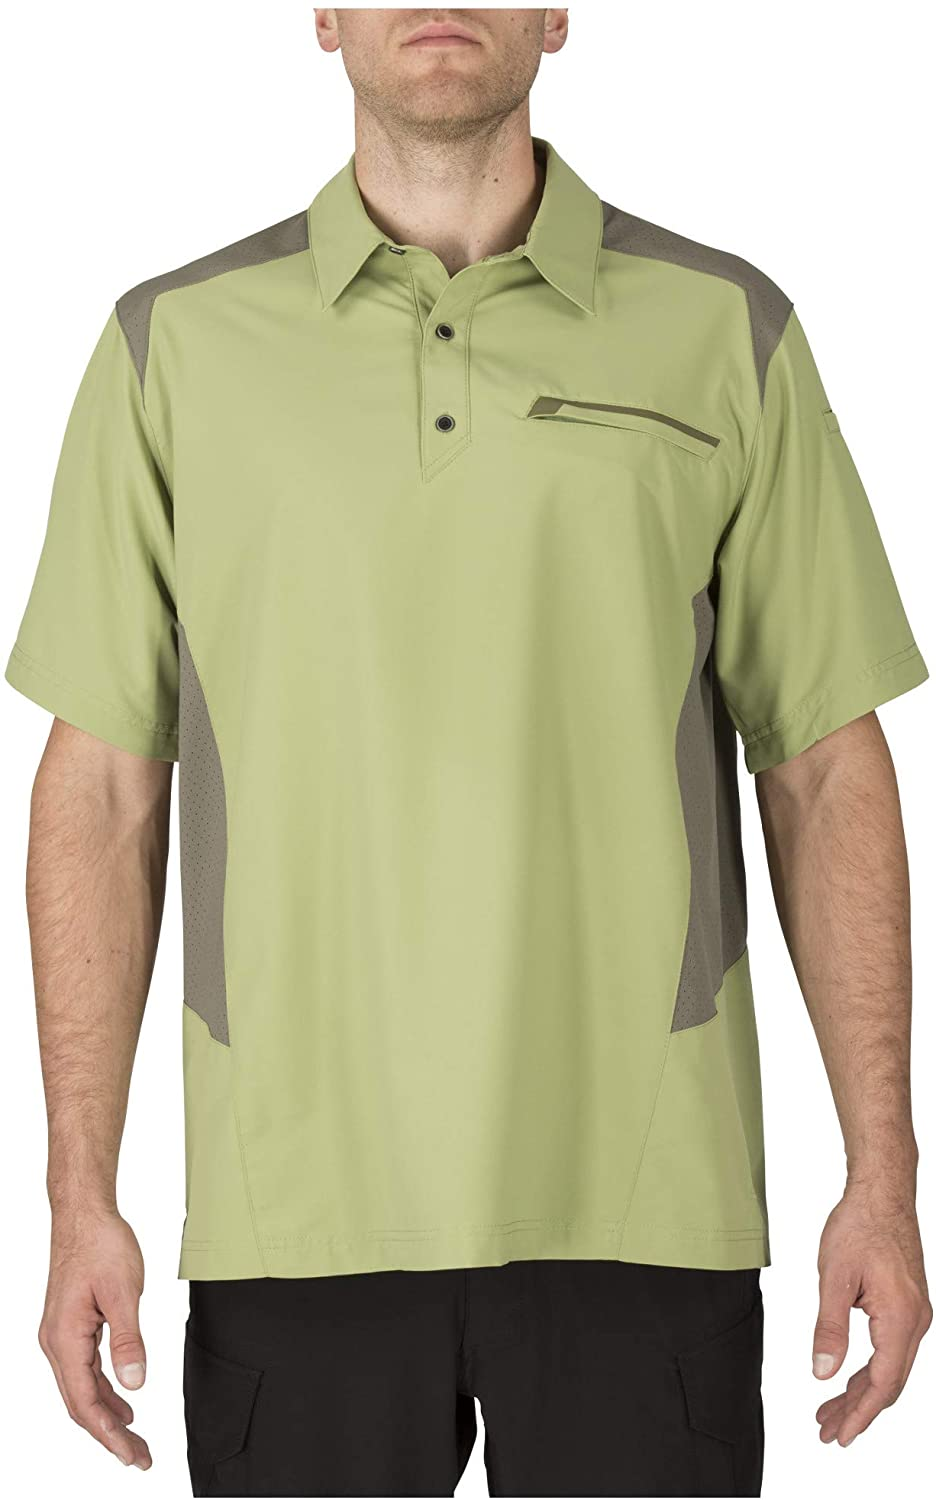 5.11 Tactical Men's Freedom Flex Short Sleeve Polo Shirt, Mechanical Stretch Fabric, Style 71356